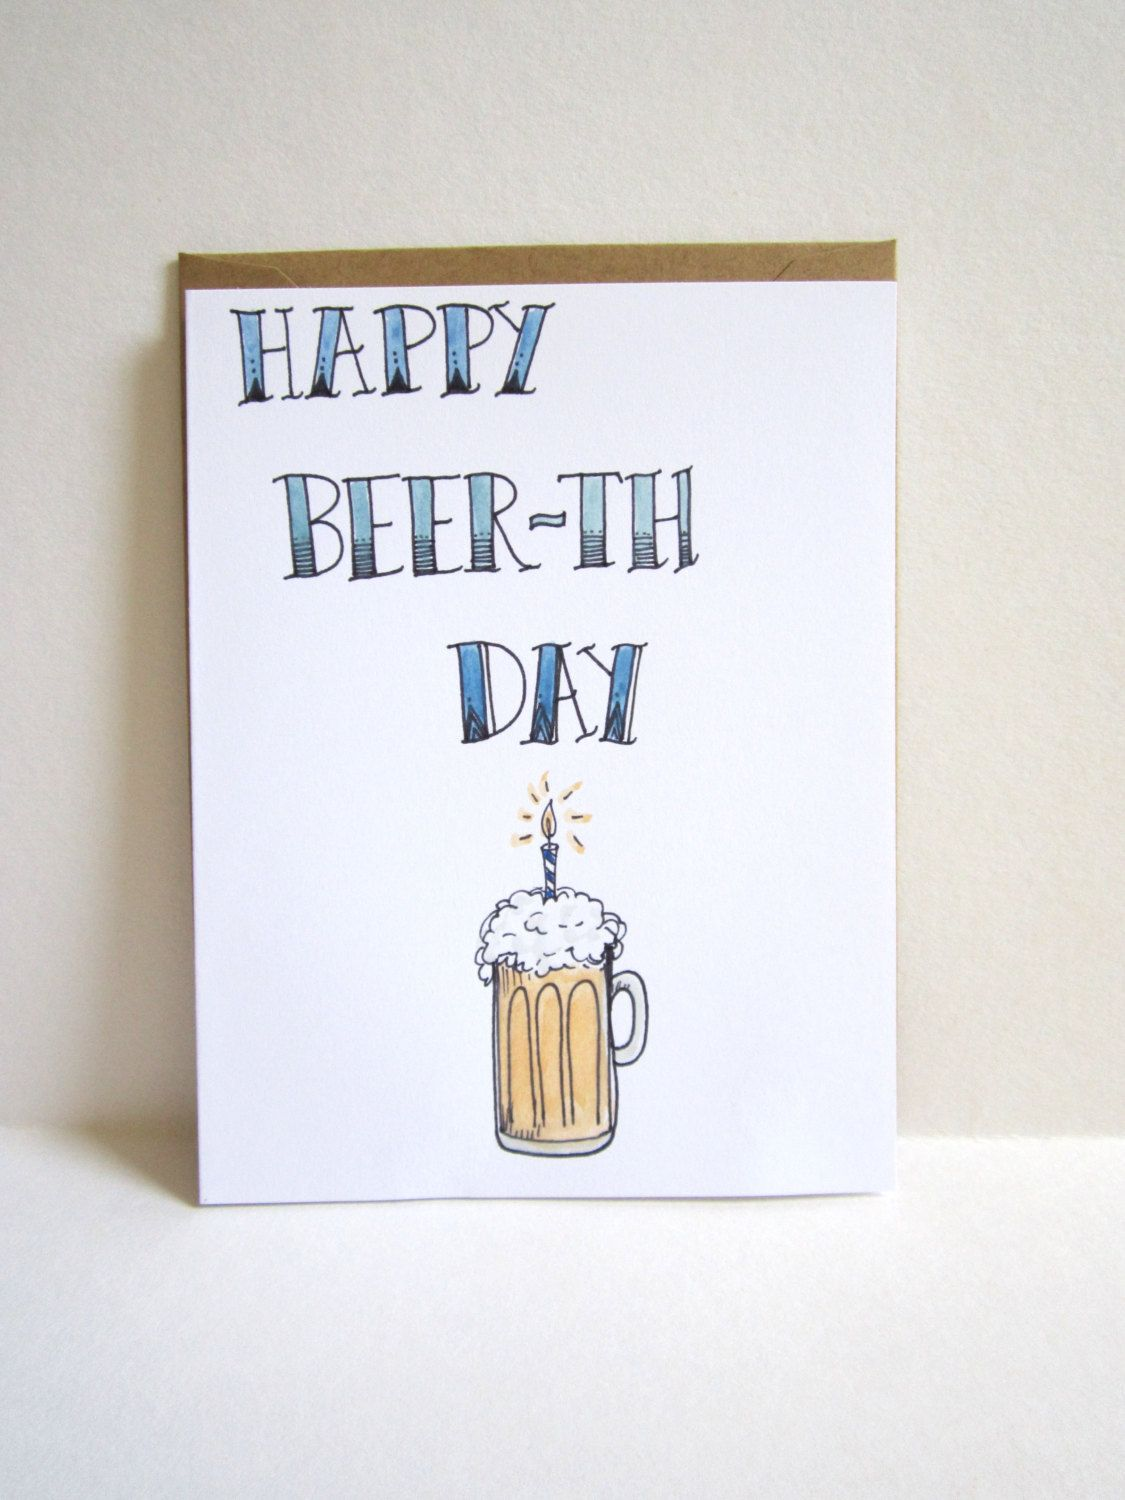 Happy Beer Th Day Card Funny Birthday Card With Beer Beer Birthday